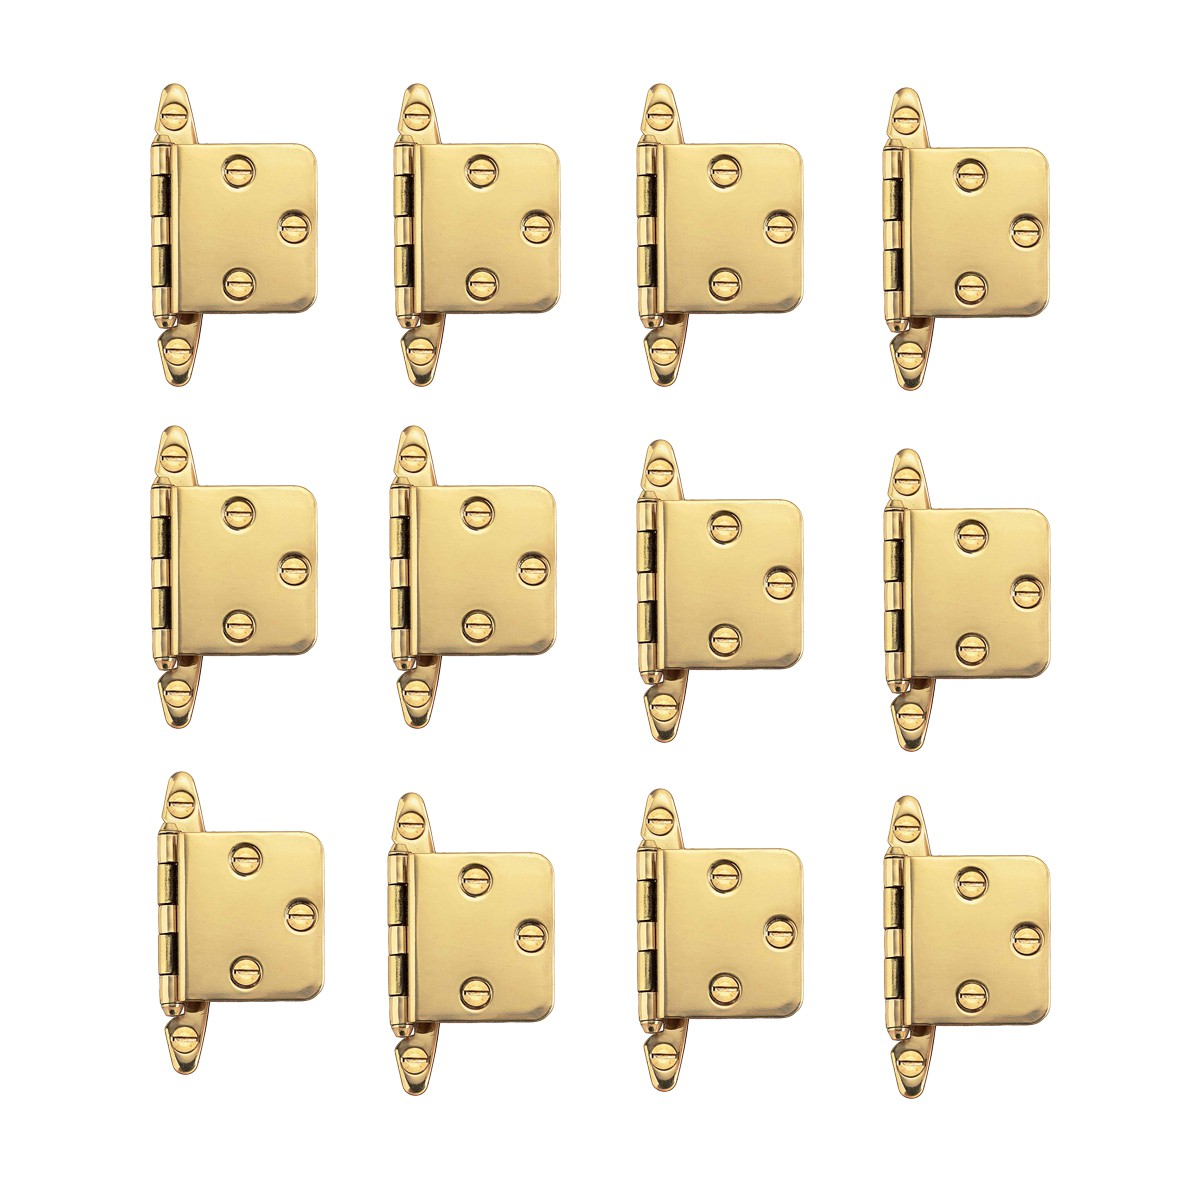 "12 Cabinet Hinges Semi-concealed Solid Brass 1.75"" W 